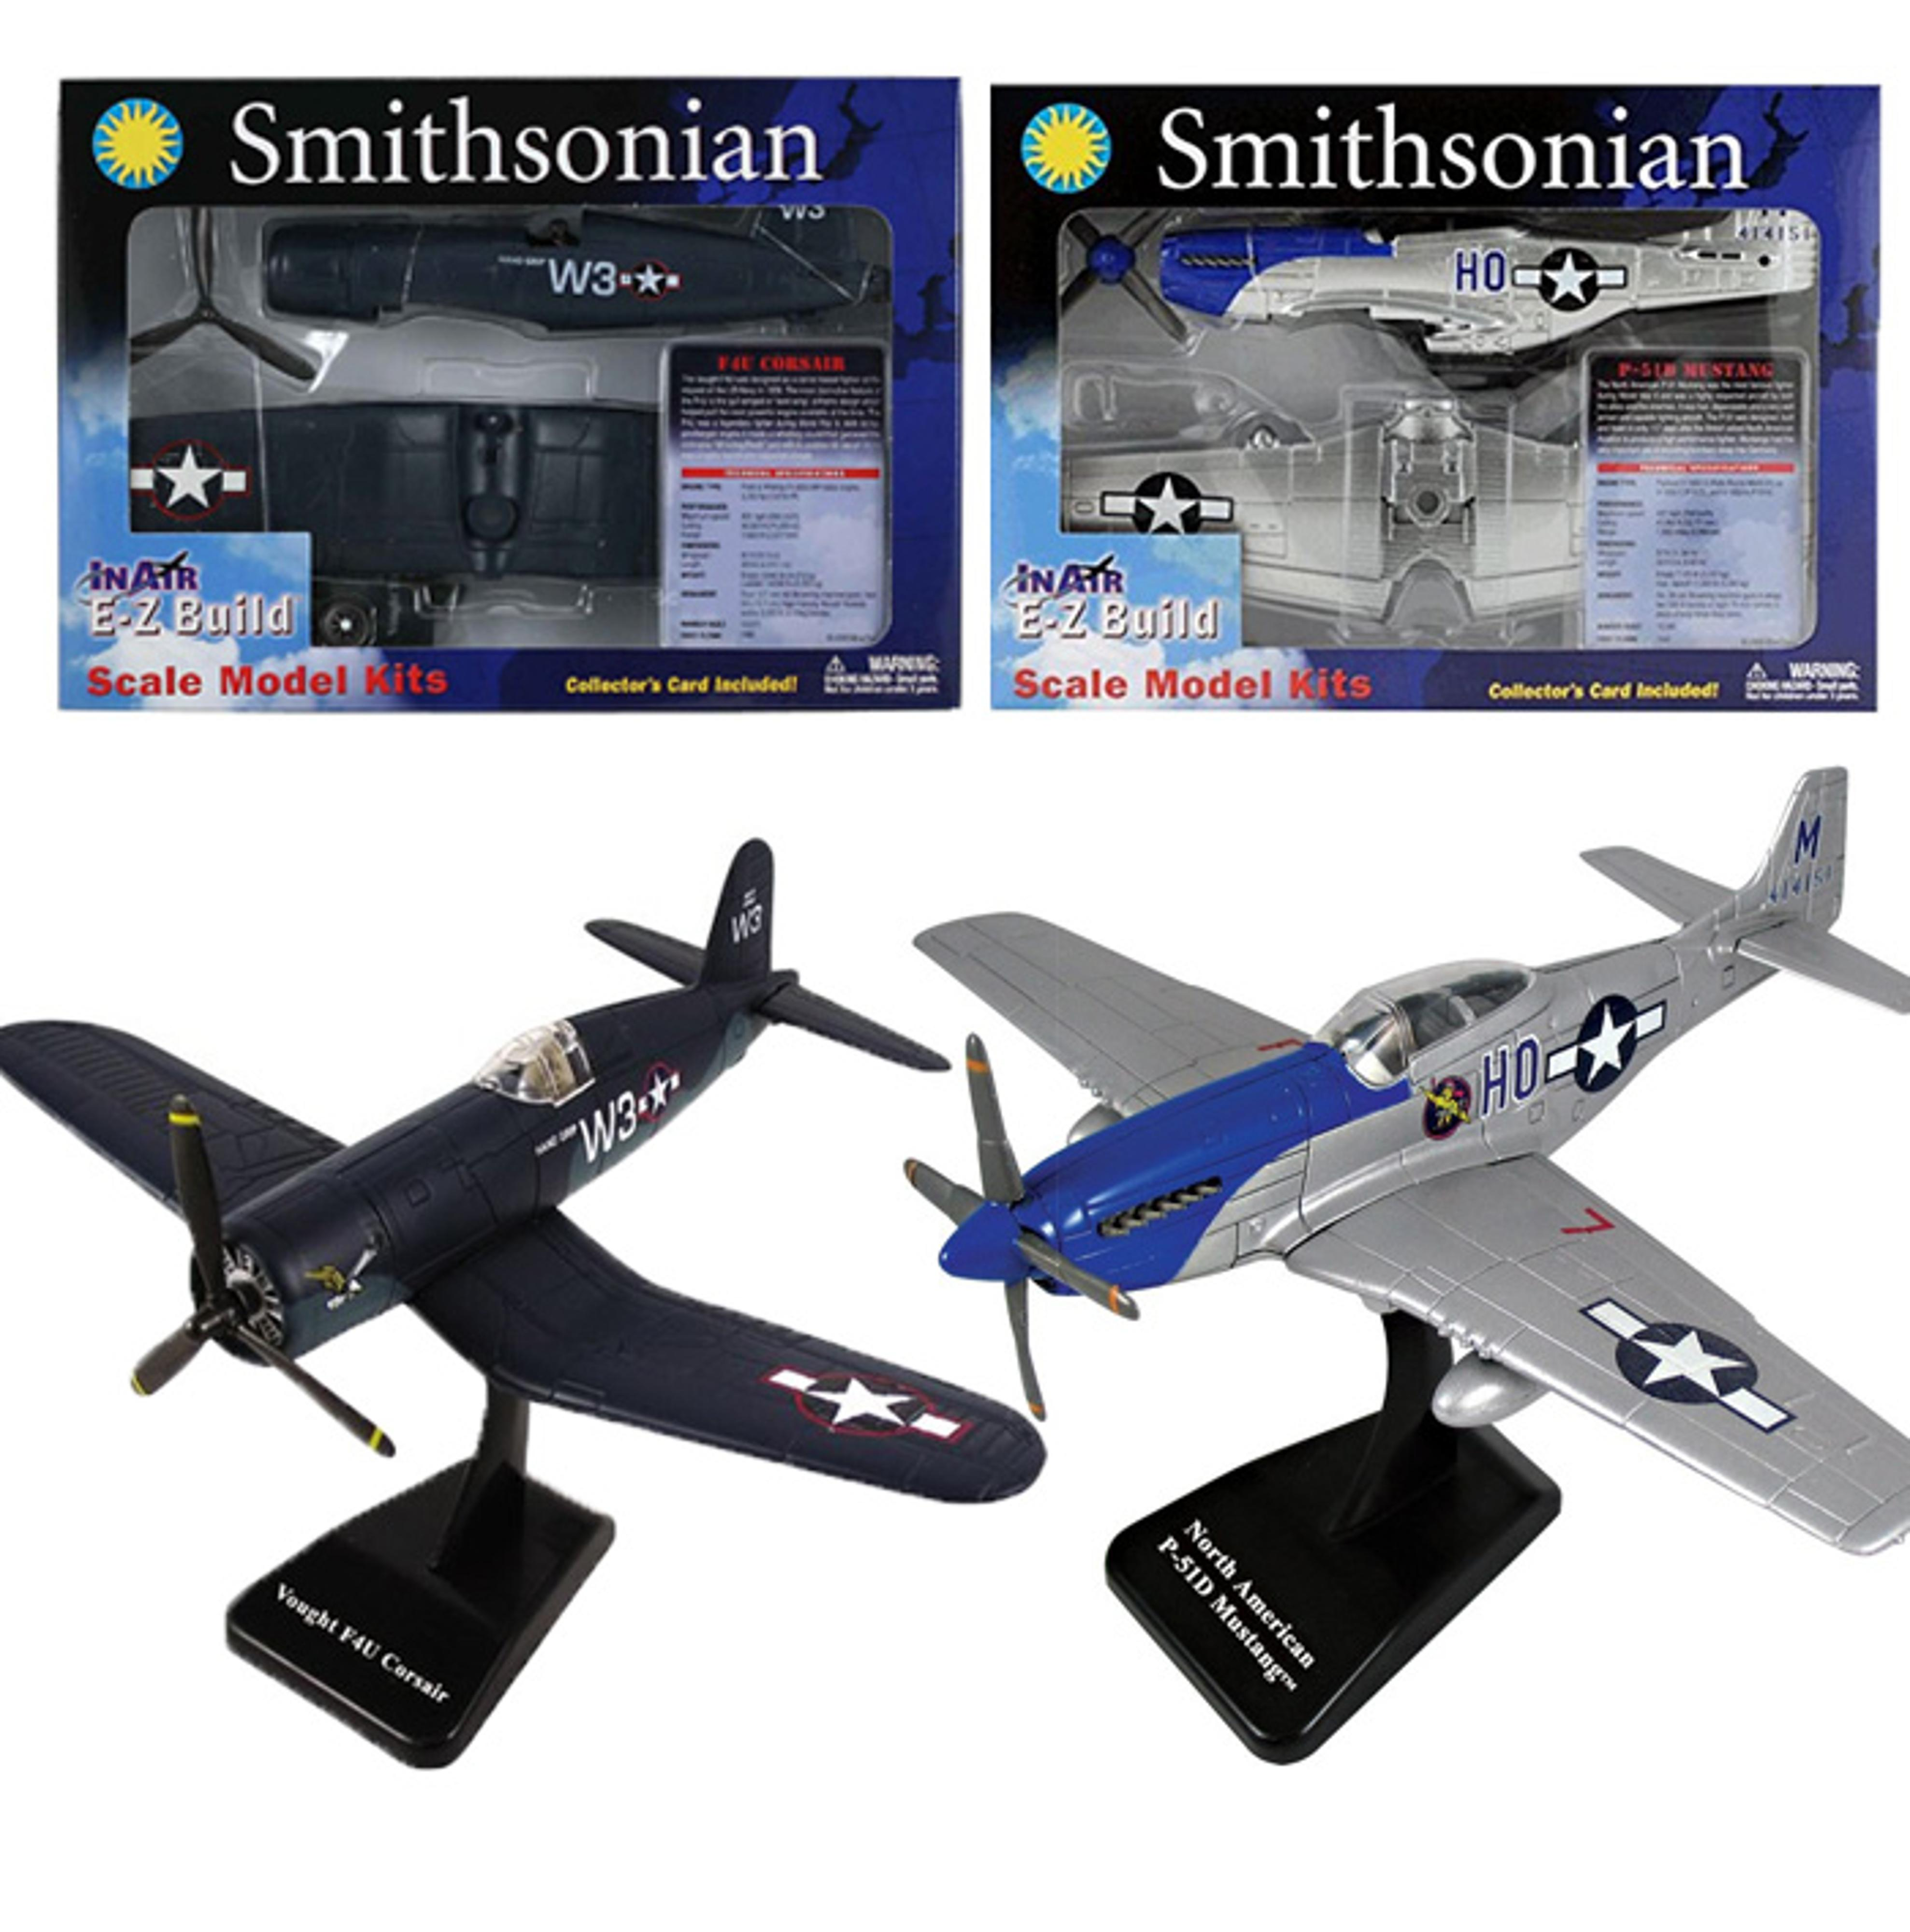 Aviation Scale Model Kit : the George Bush Museum Store